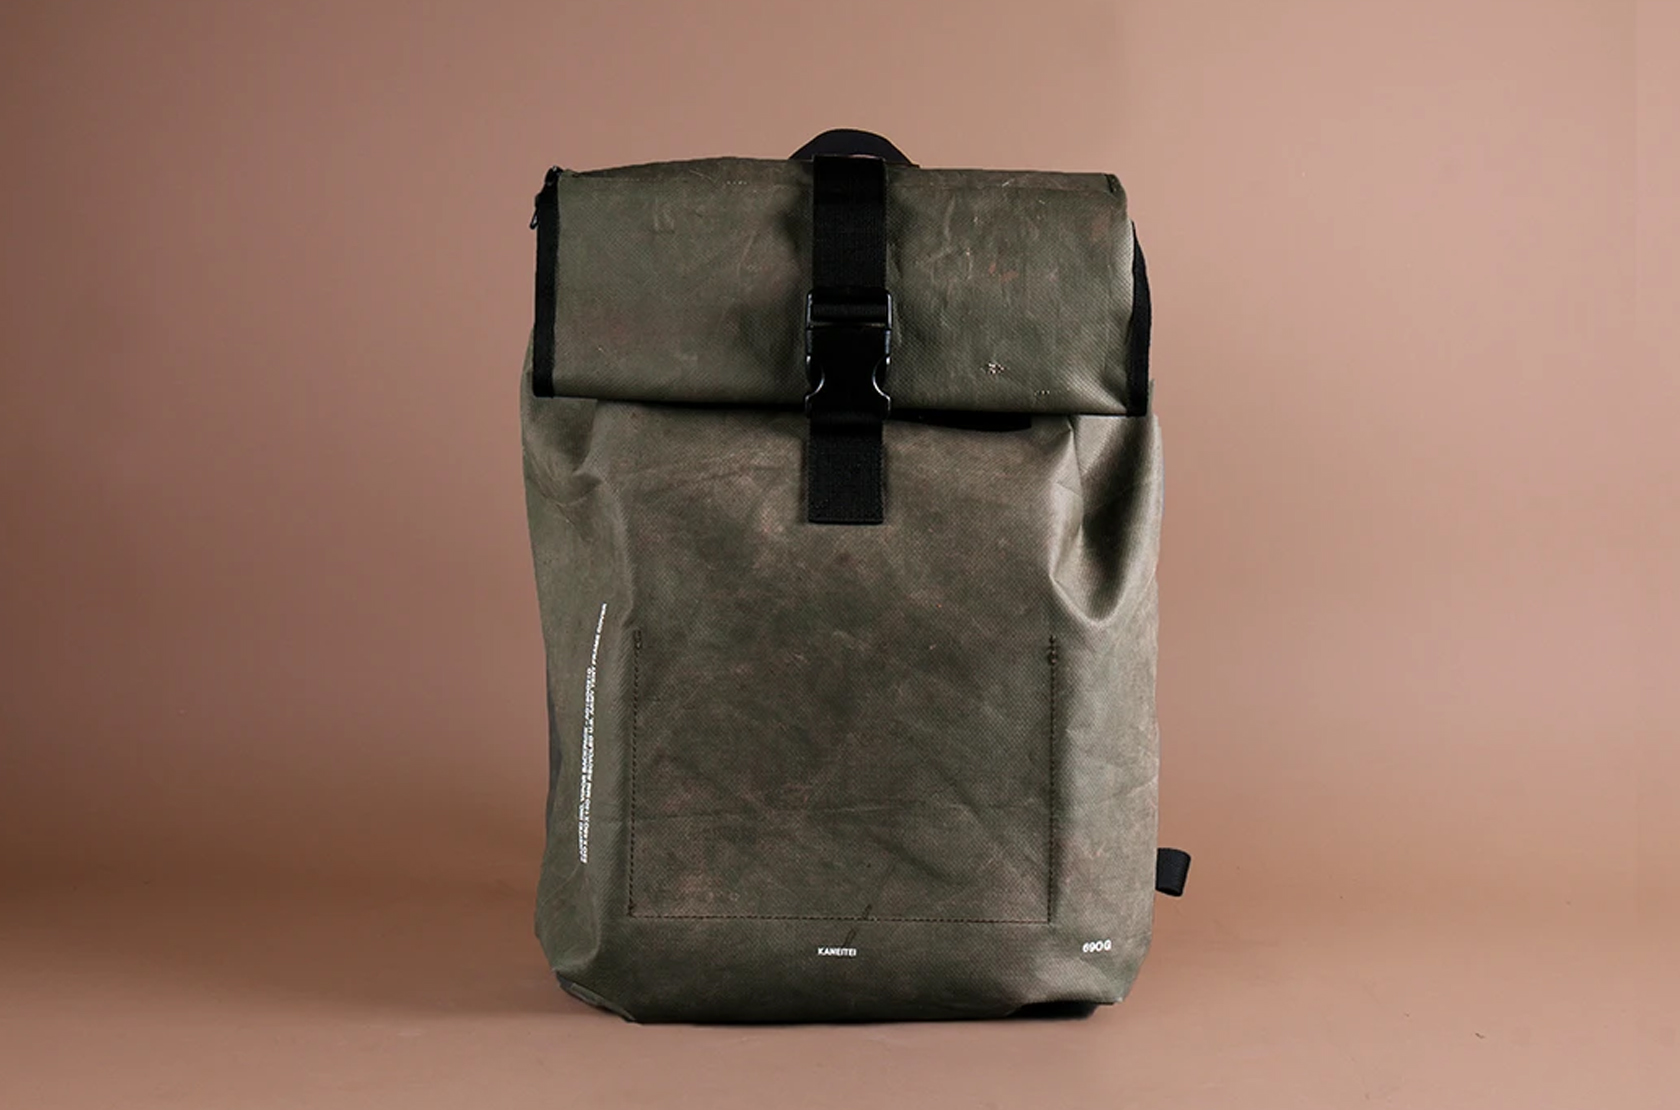 KIM SEON HO'S BAG IN MYHOMETOWN CHA CHA CHA IS ACTUALLY MADE FROM REAL WAR TENTS